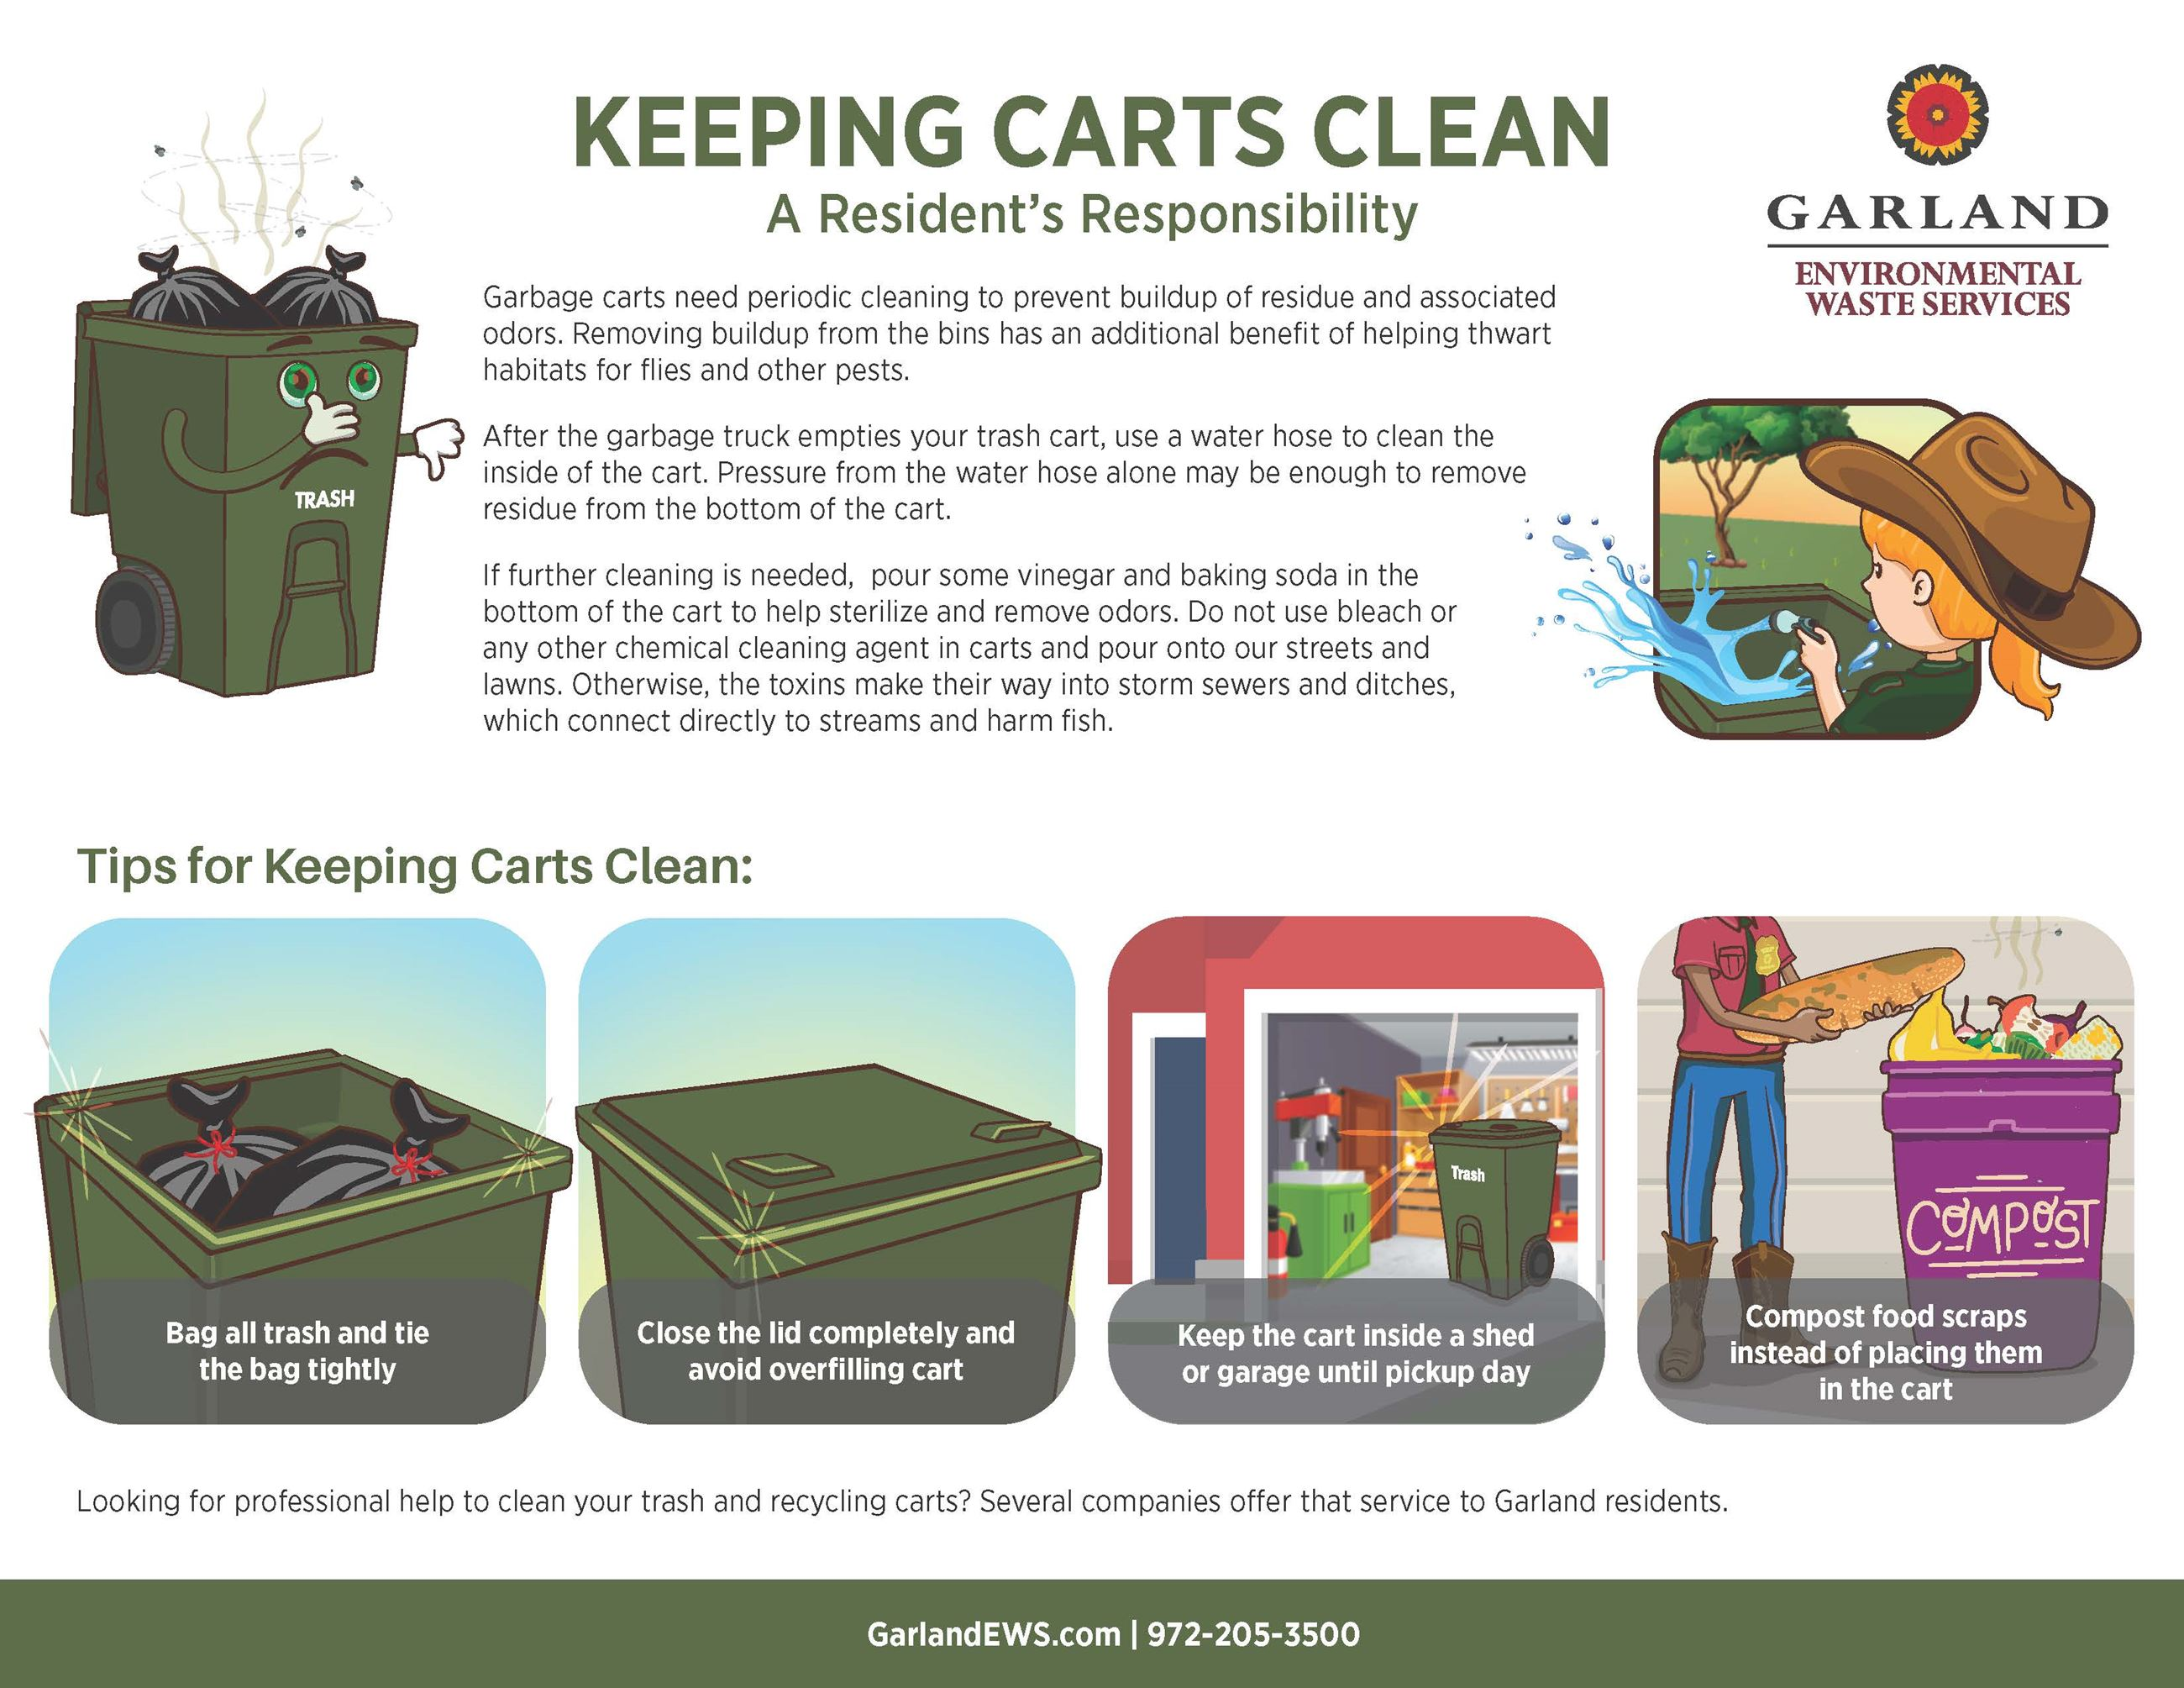 Explanation of how residents can keep their trash cart clean.